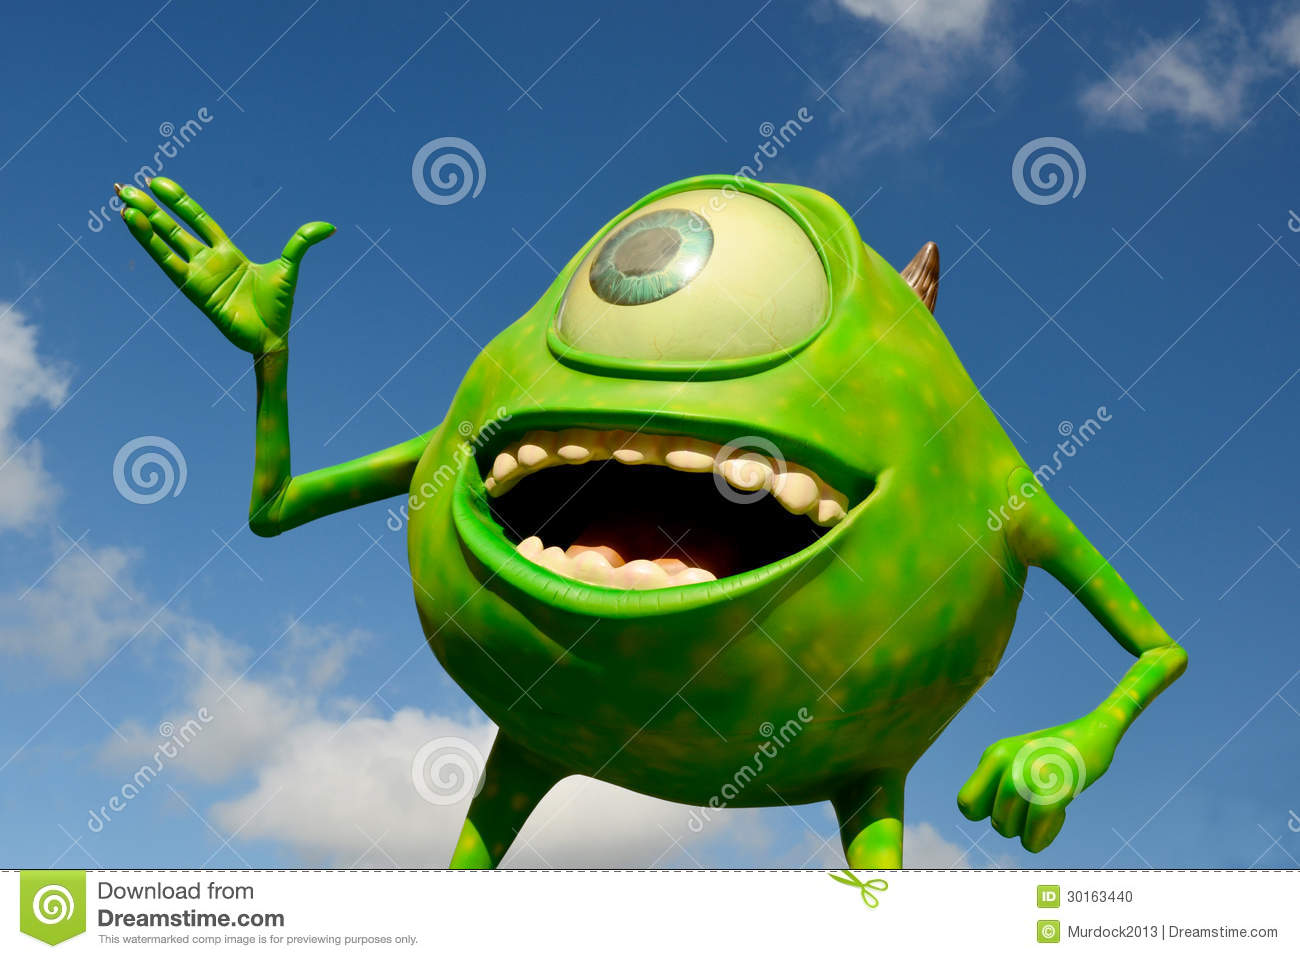 Disney Mike from Monsters inc. incorporated